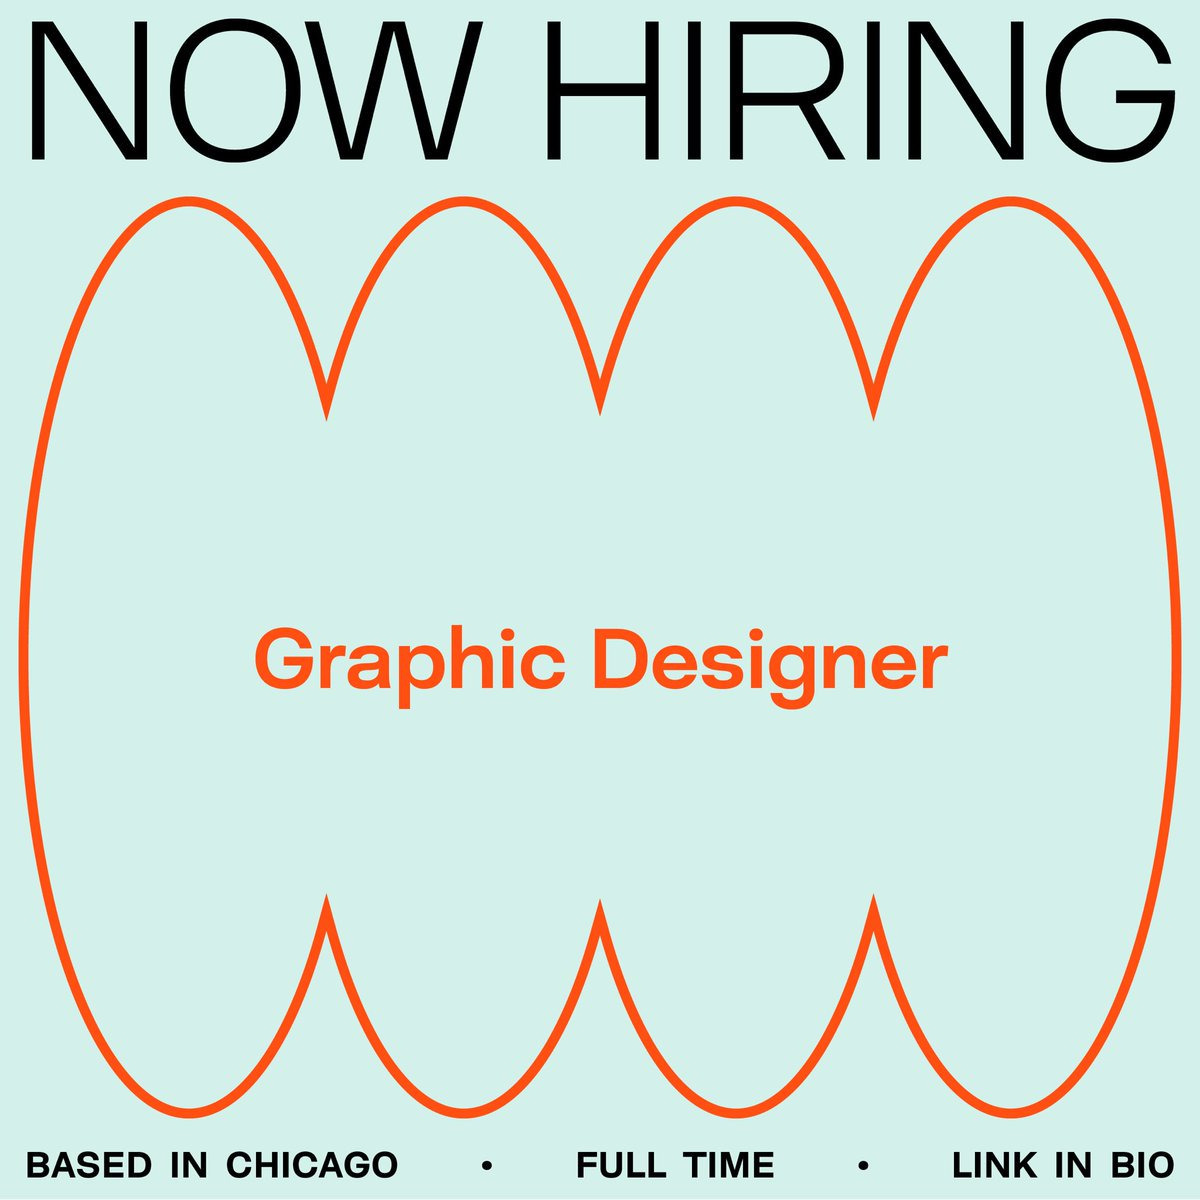 Come work with me at @varyerer! Were hiring for a Marketing & Growth Manager, Graphic Designer, and Content Developer 🔮 builtinchicago.org/company/varyer